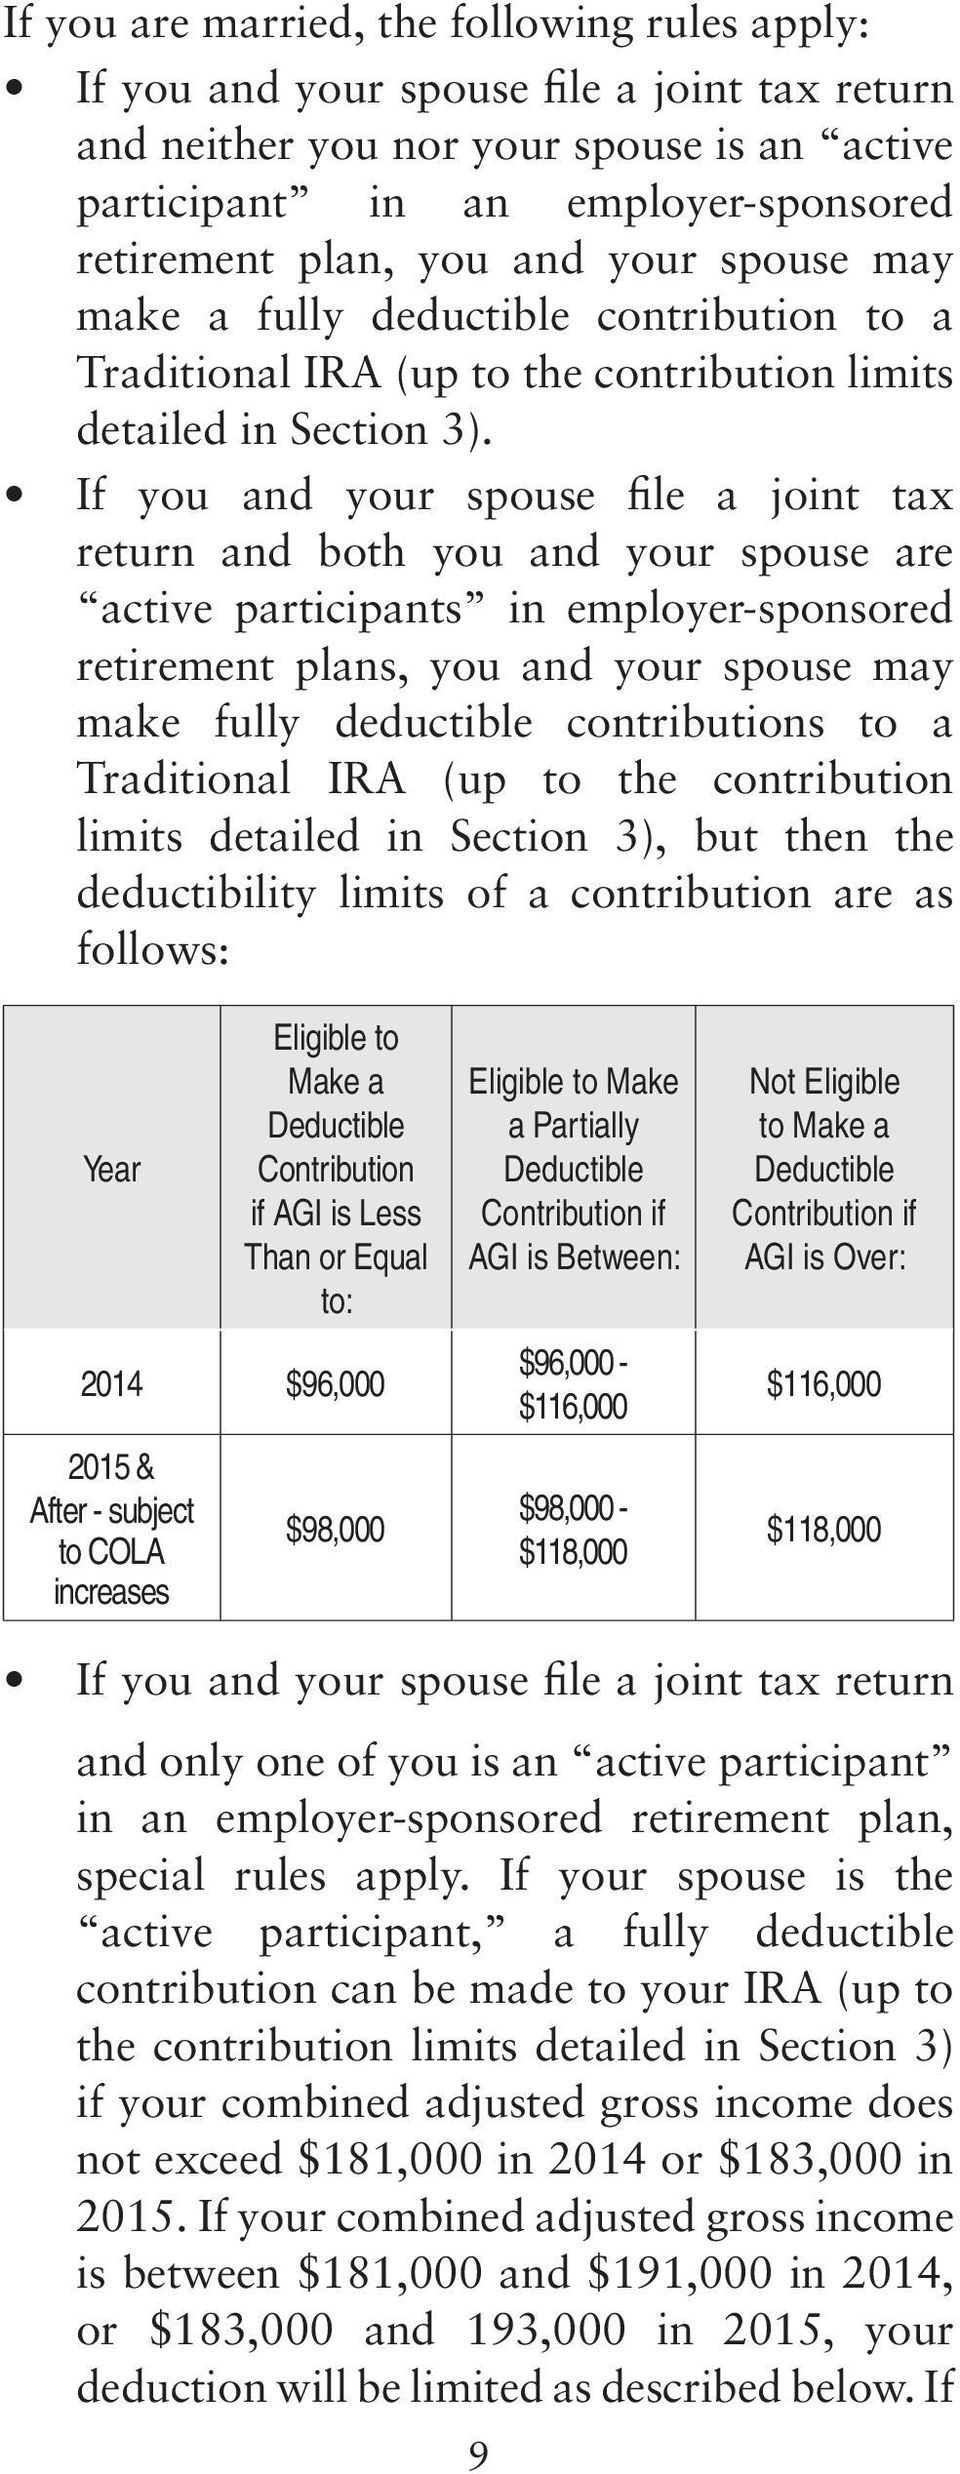 If you and your spouse file a joint tax return and both you and your spouse are active participants in employer-sponsored retirement plans, you and your spouse may make fully deductible contributions